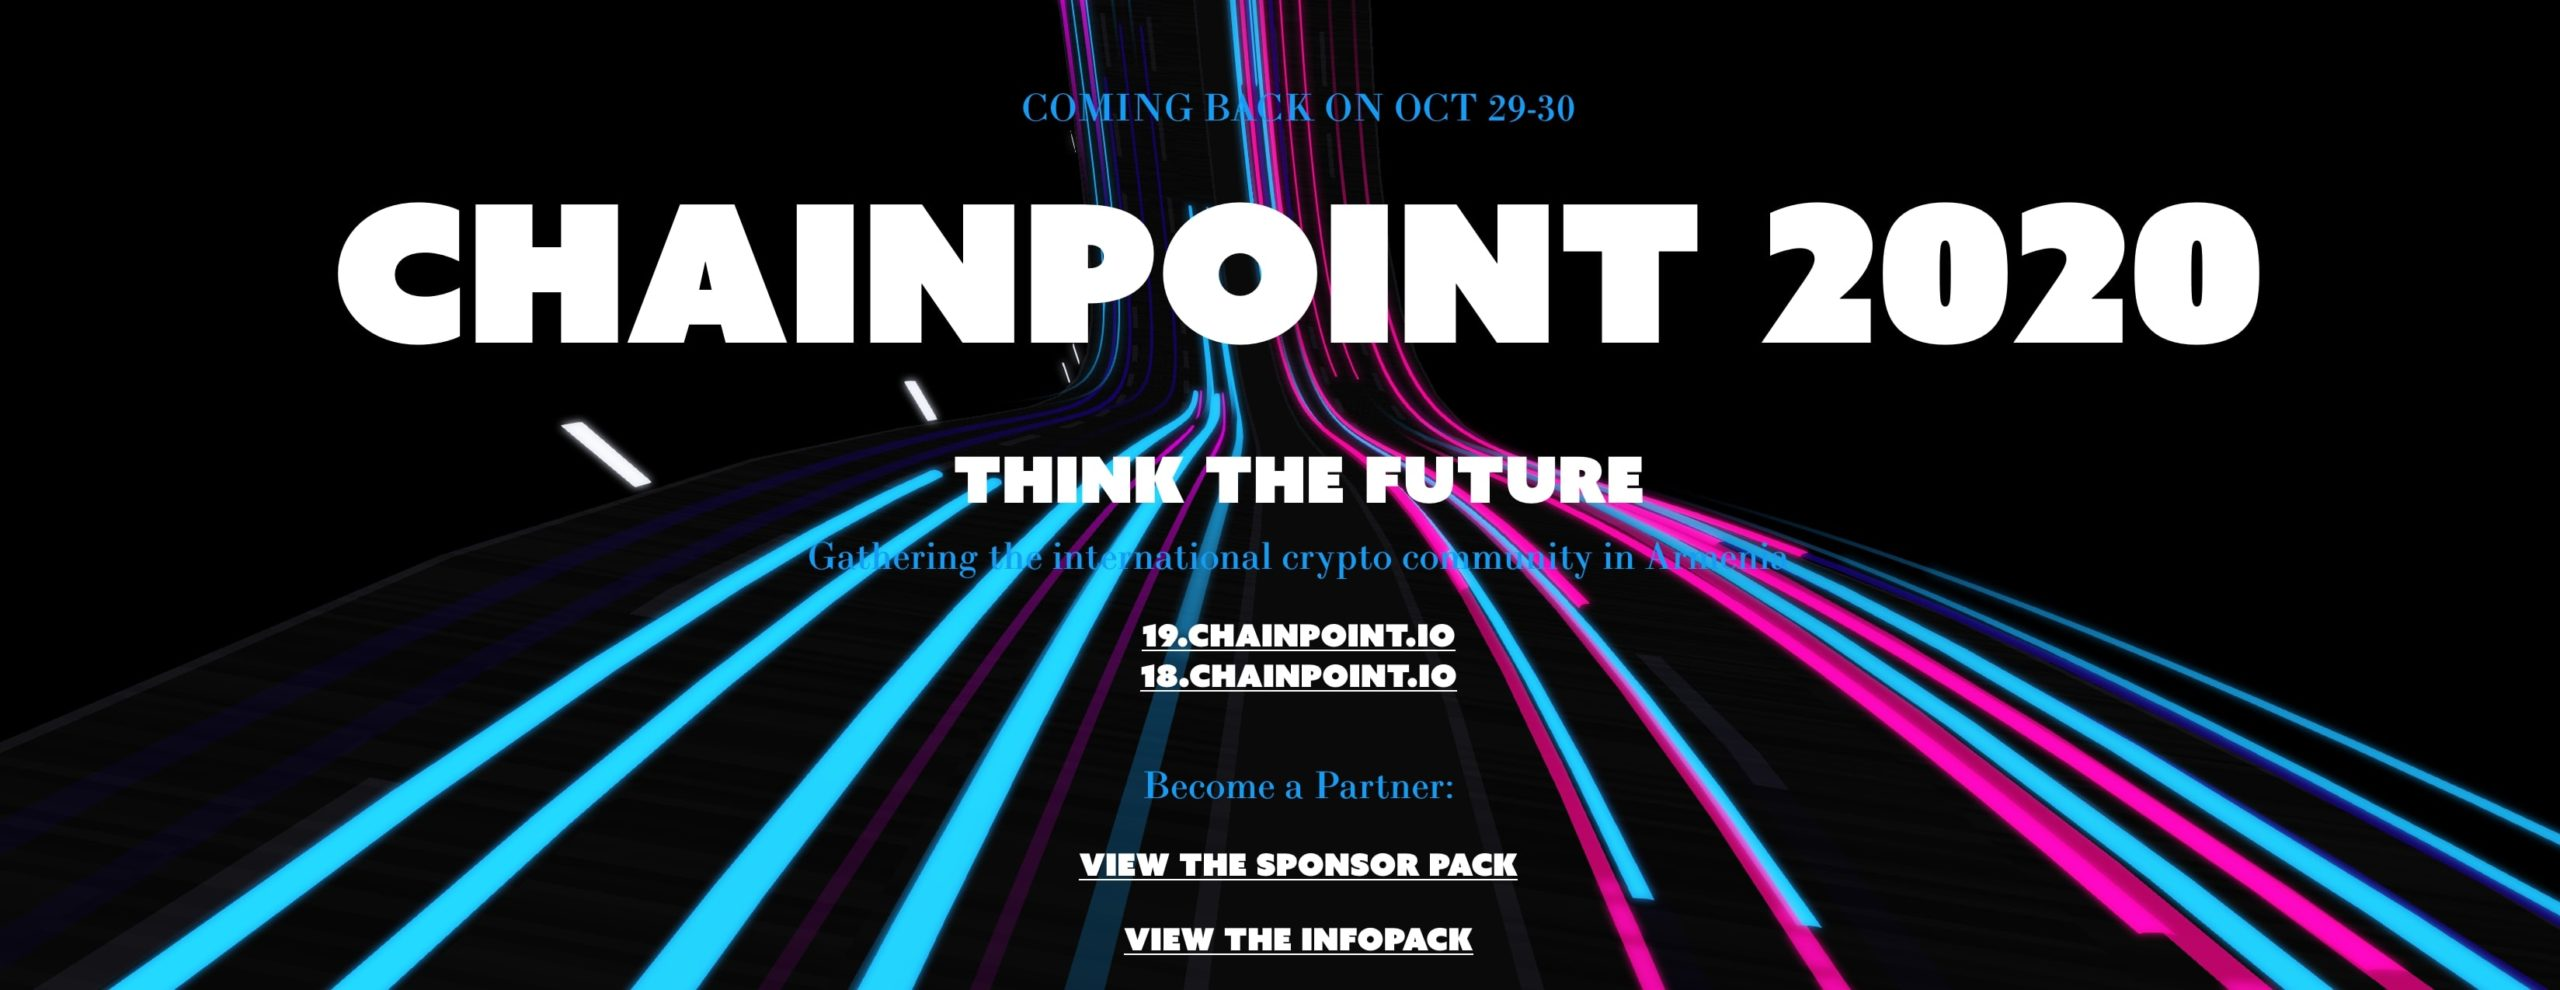 ChainPoint 2020